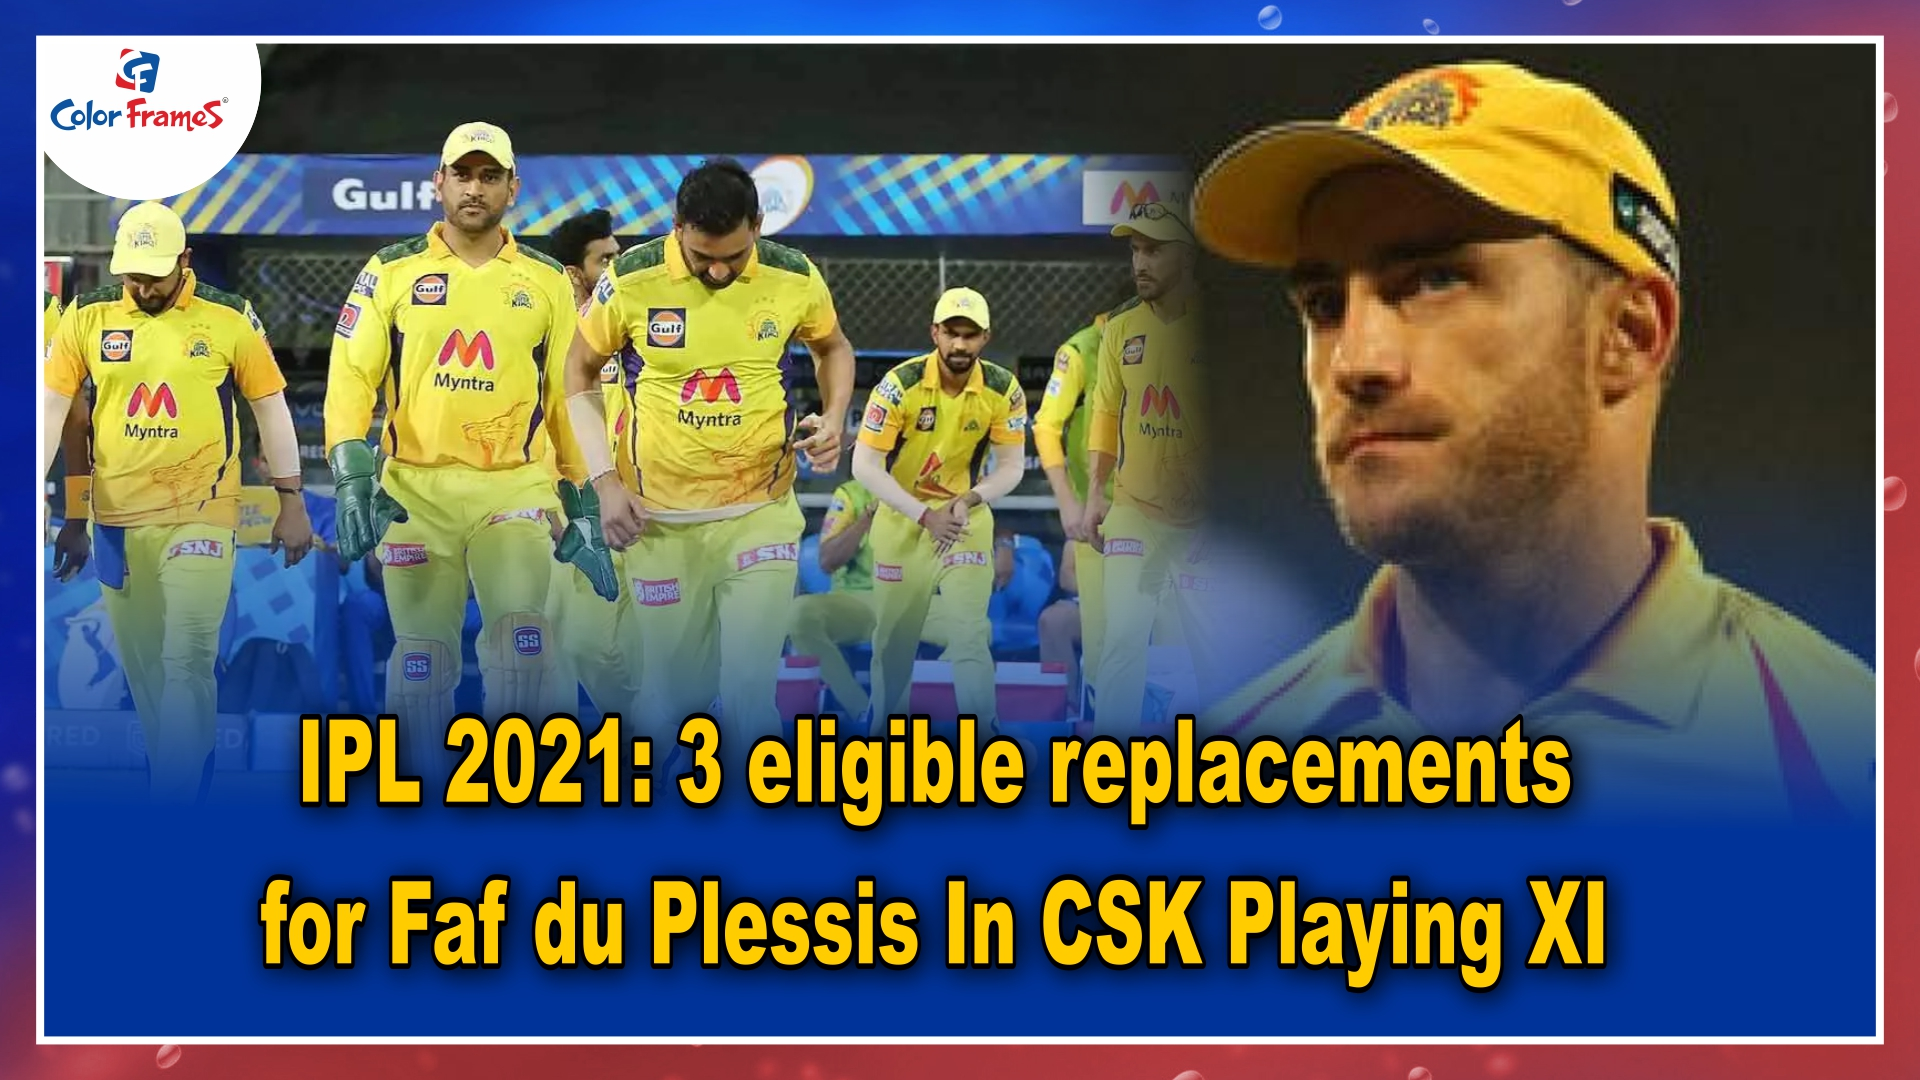 IPL 2021: 3 eligible replacements for Faf du Plessis In CSK Playing XI